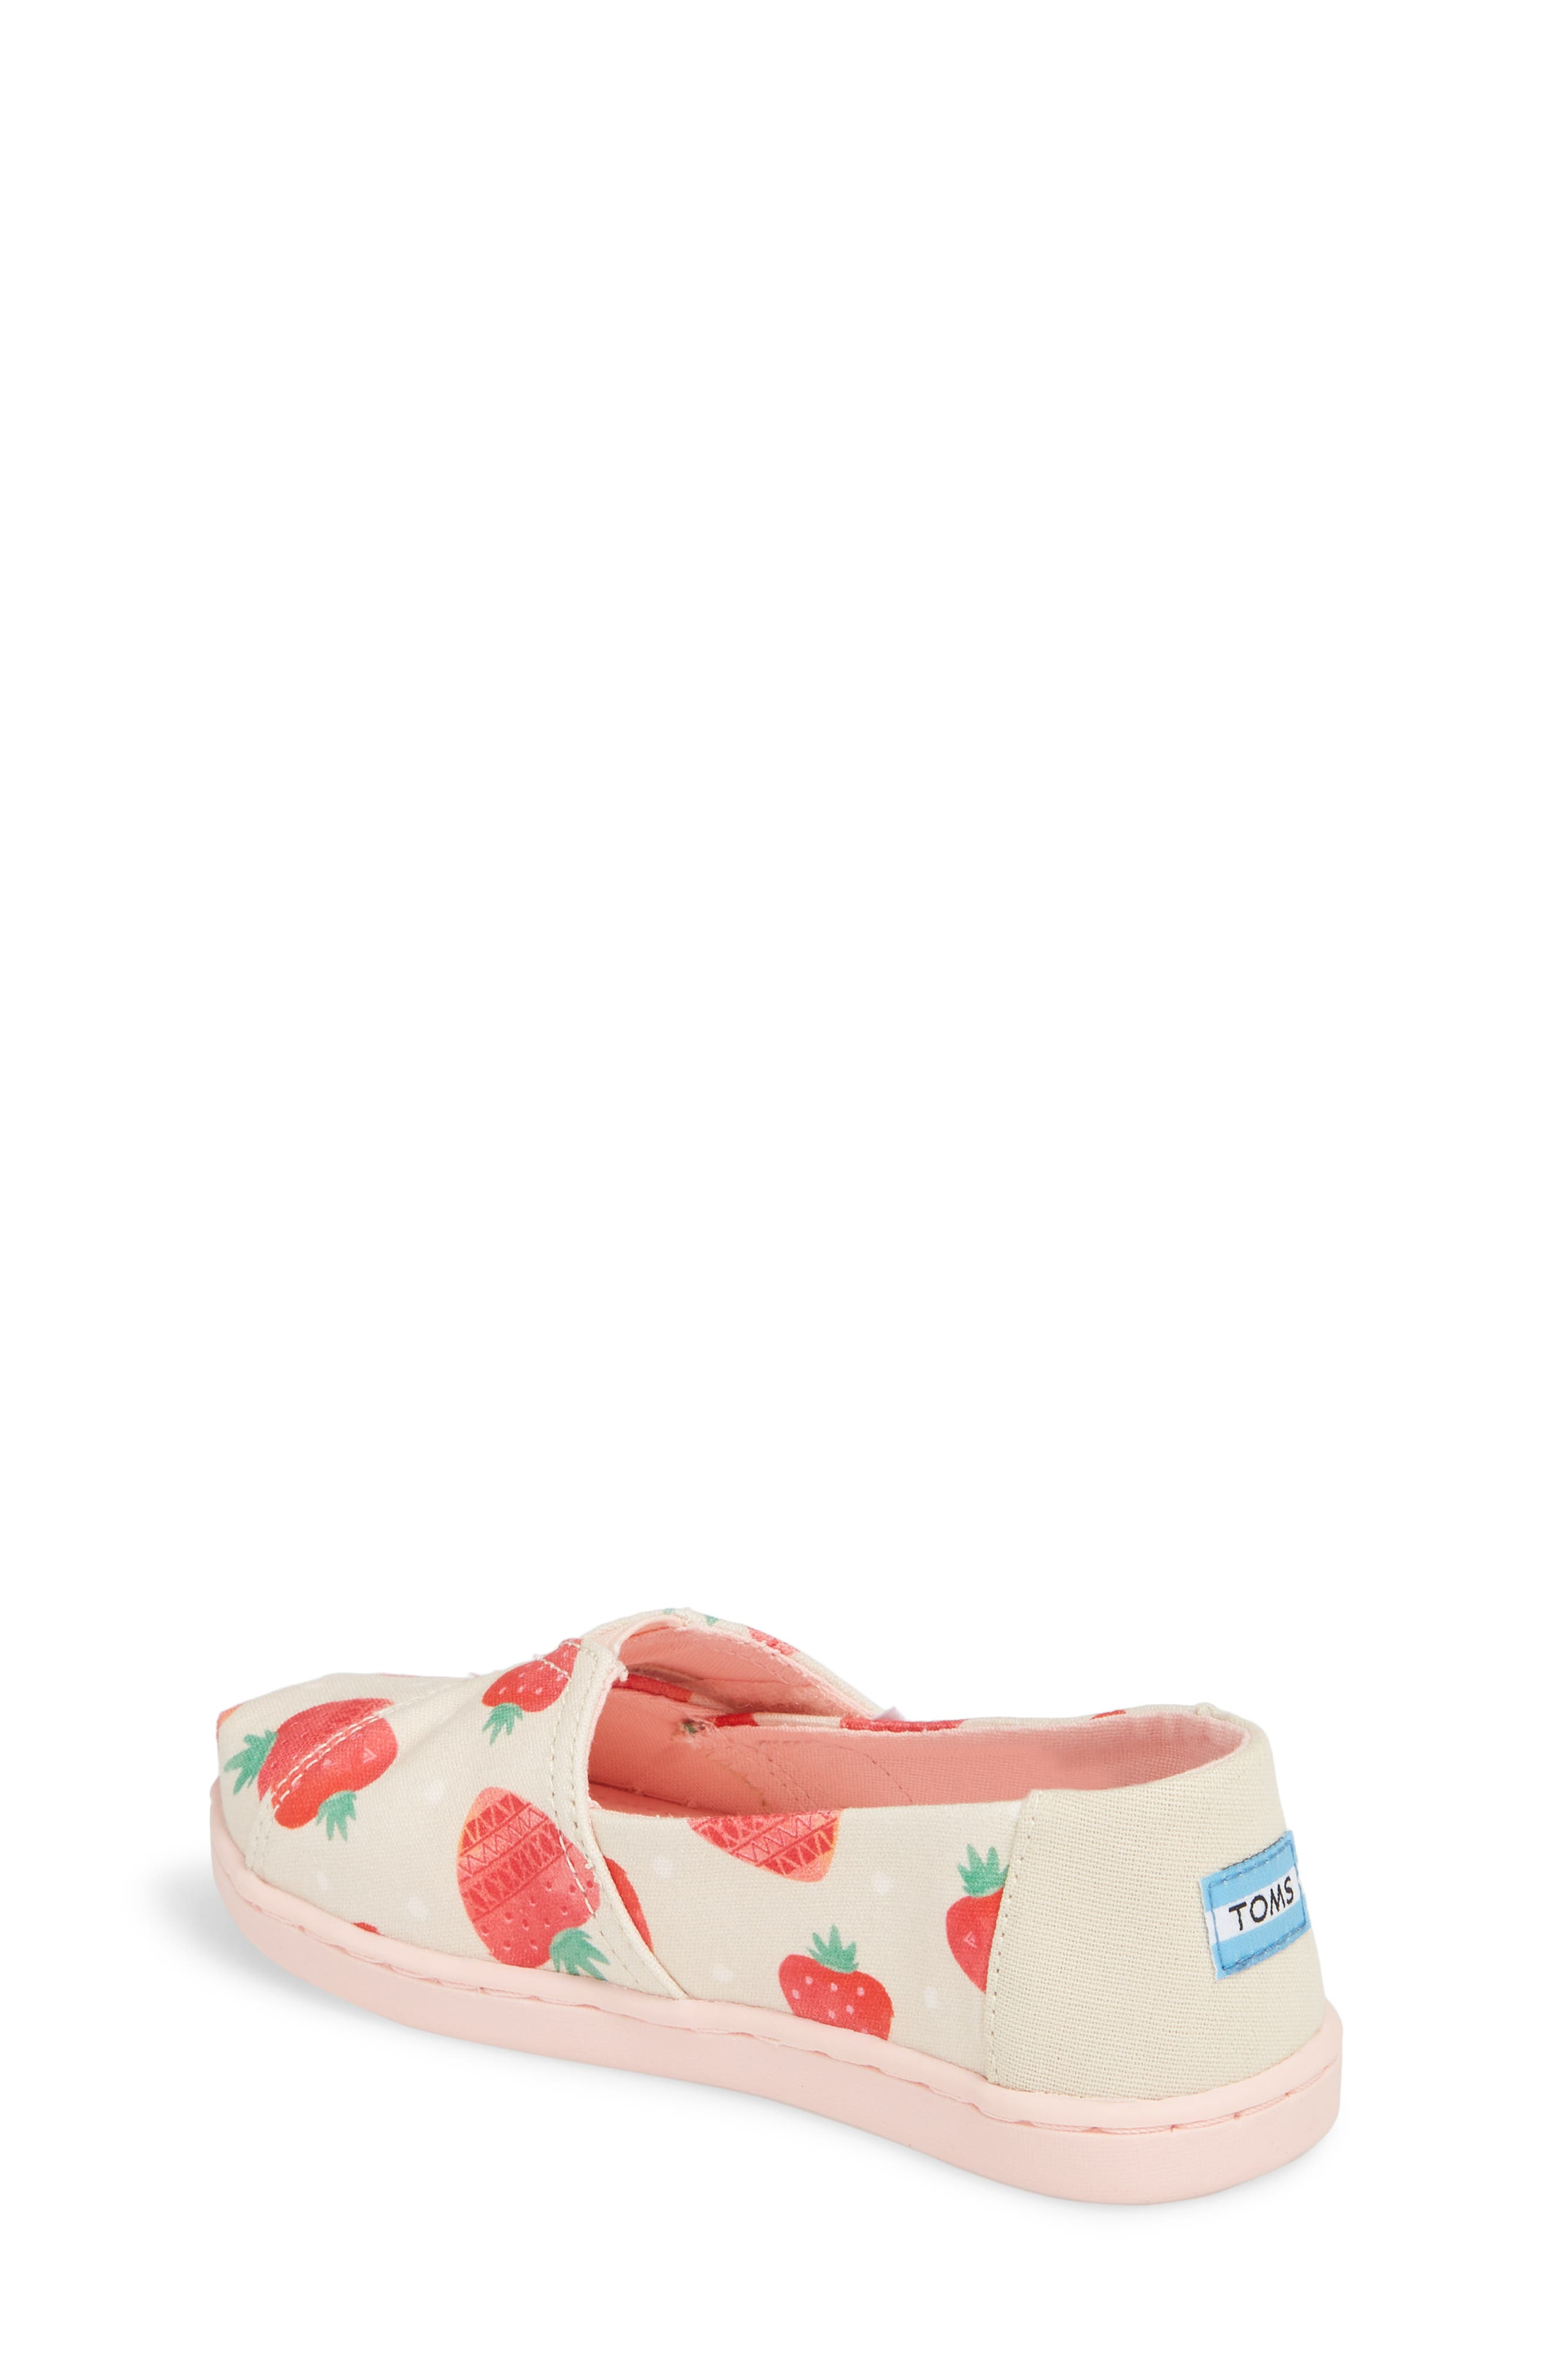 c4ff46df7f46f1 Kids  TOMS Shoes